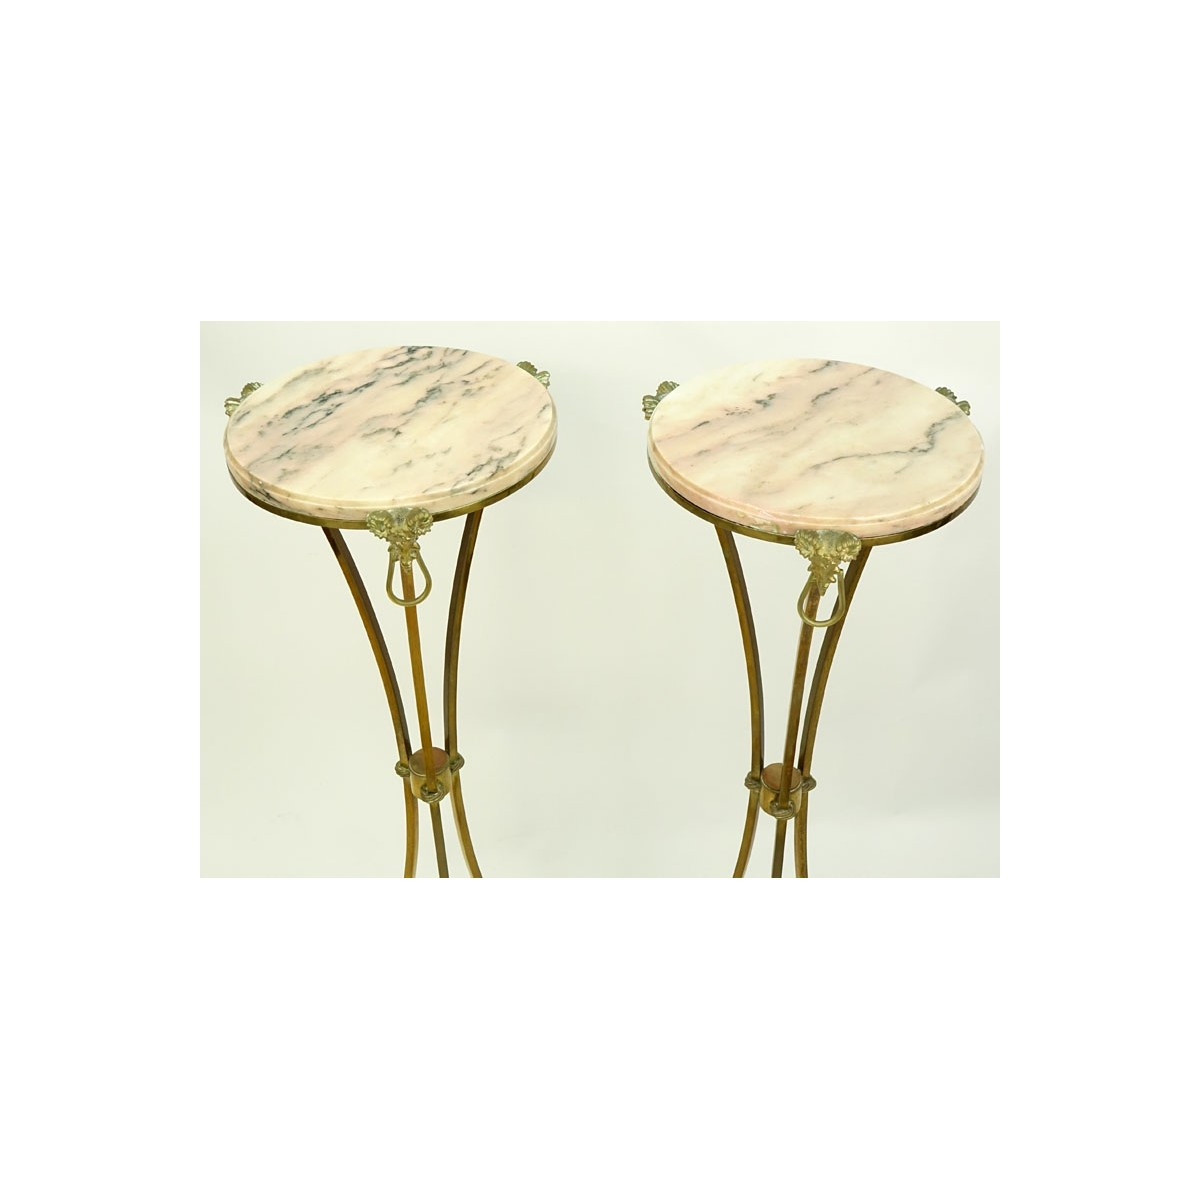 Pair of Marble Top Maison Jansen Style Brass Pedestal Tables. Rams head fittings standing on hoof f